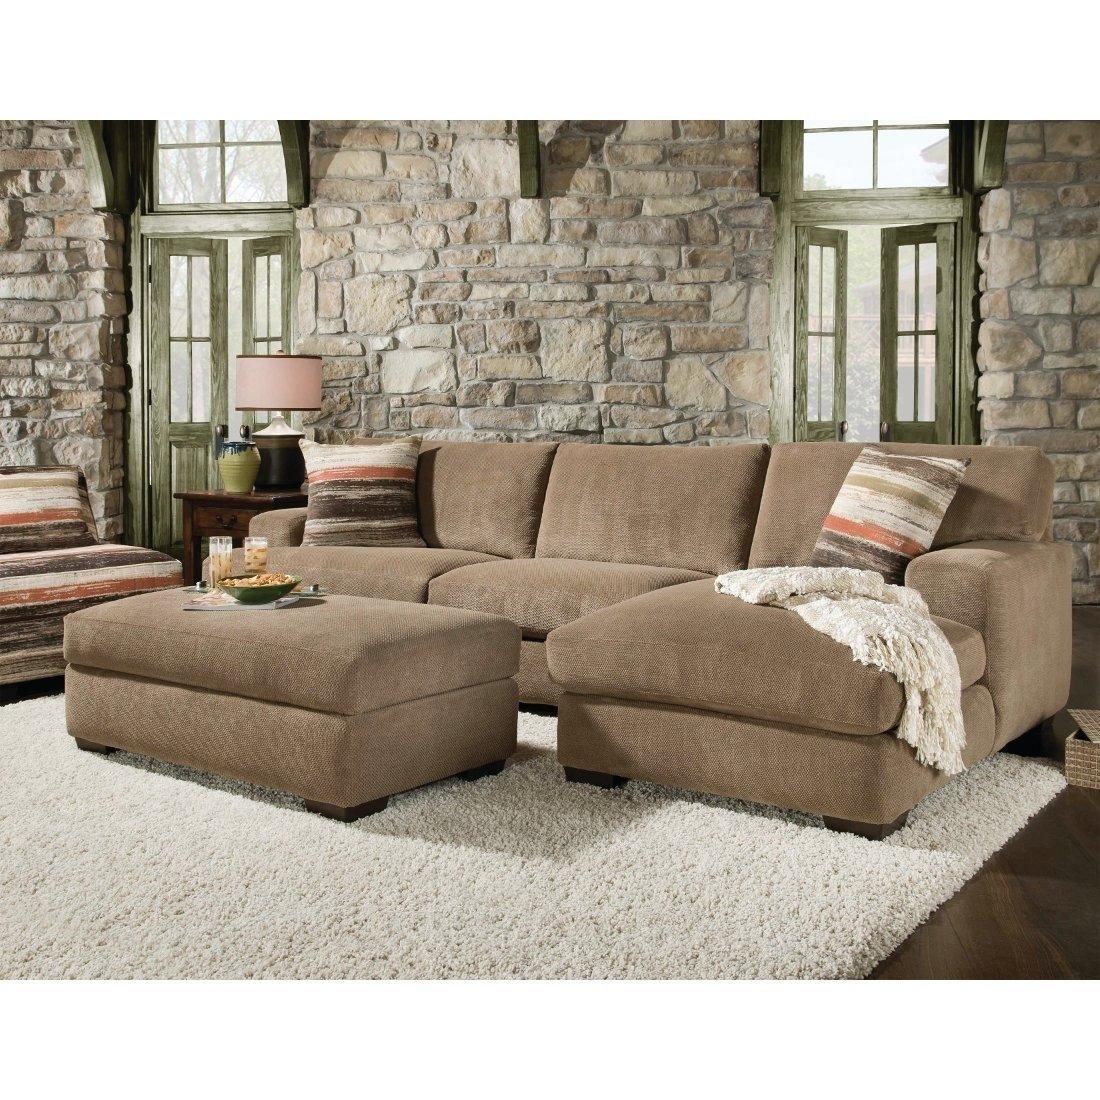 Beautiful Sectional Sofa With Chaise And Ottoman Pictures Pertaining To Sectional Sofas With Chaise Lounge And Ottoman (Image 2 of 10)